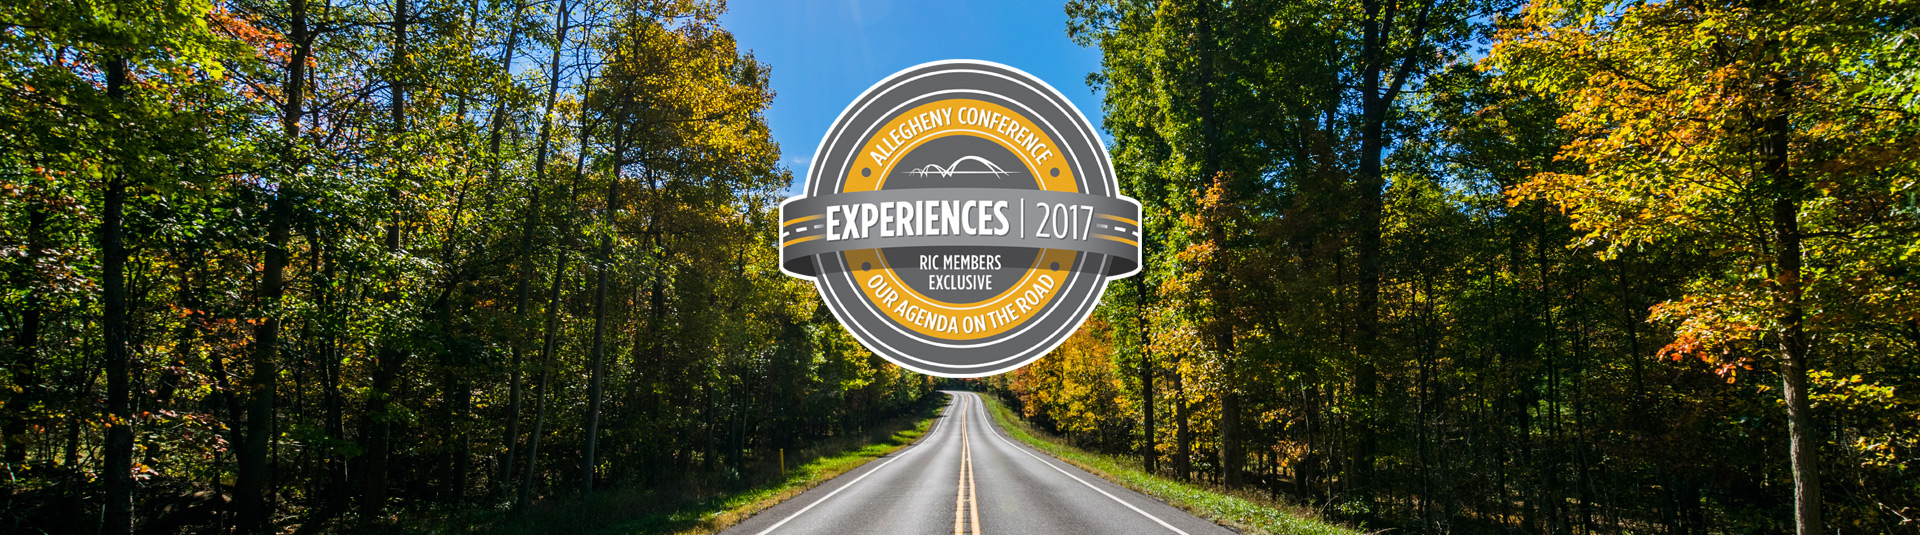 Allegheny Conference – Our Agenda on the Road